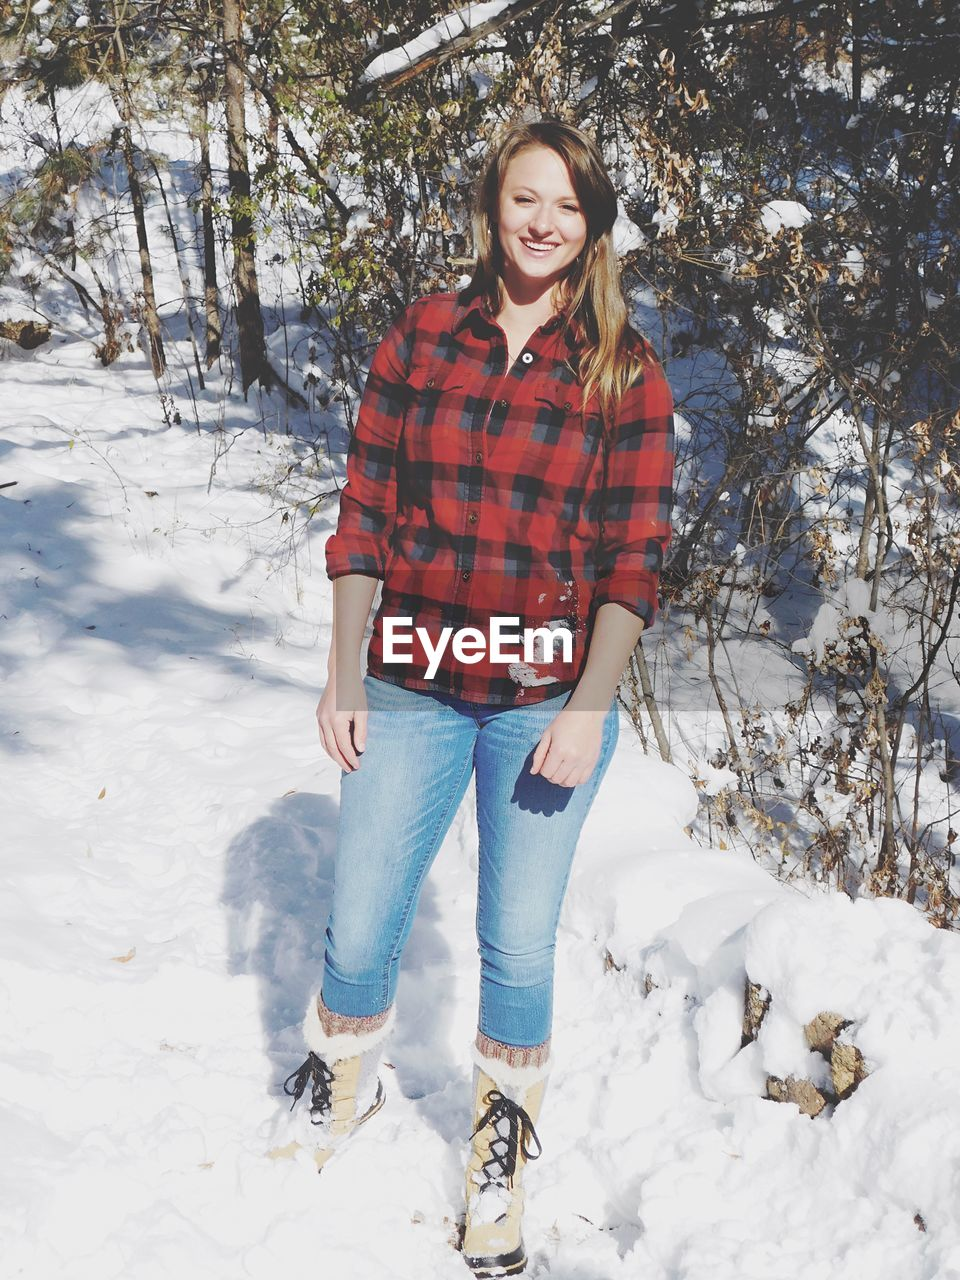 snow, winter, cold temperature, one person, smiling, front view, young adult, portrait, real people, leisure activity, nature, looking at camera, clothing, happiness, full length, lifestyles, day, casual clothing, emotion, warm clothing, outdoors, hairstyle, beautiful woman, jeans